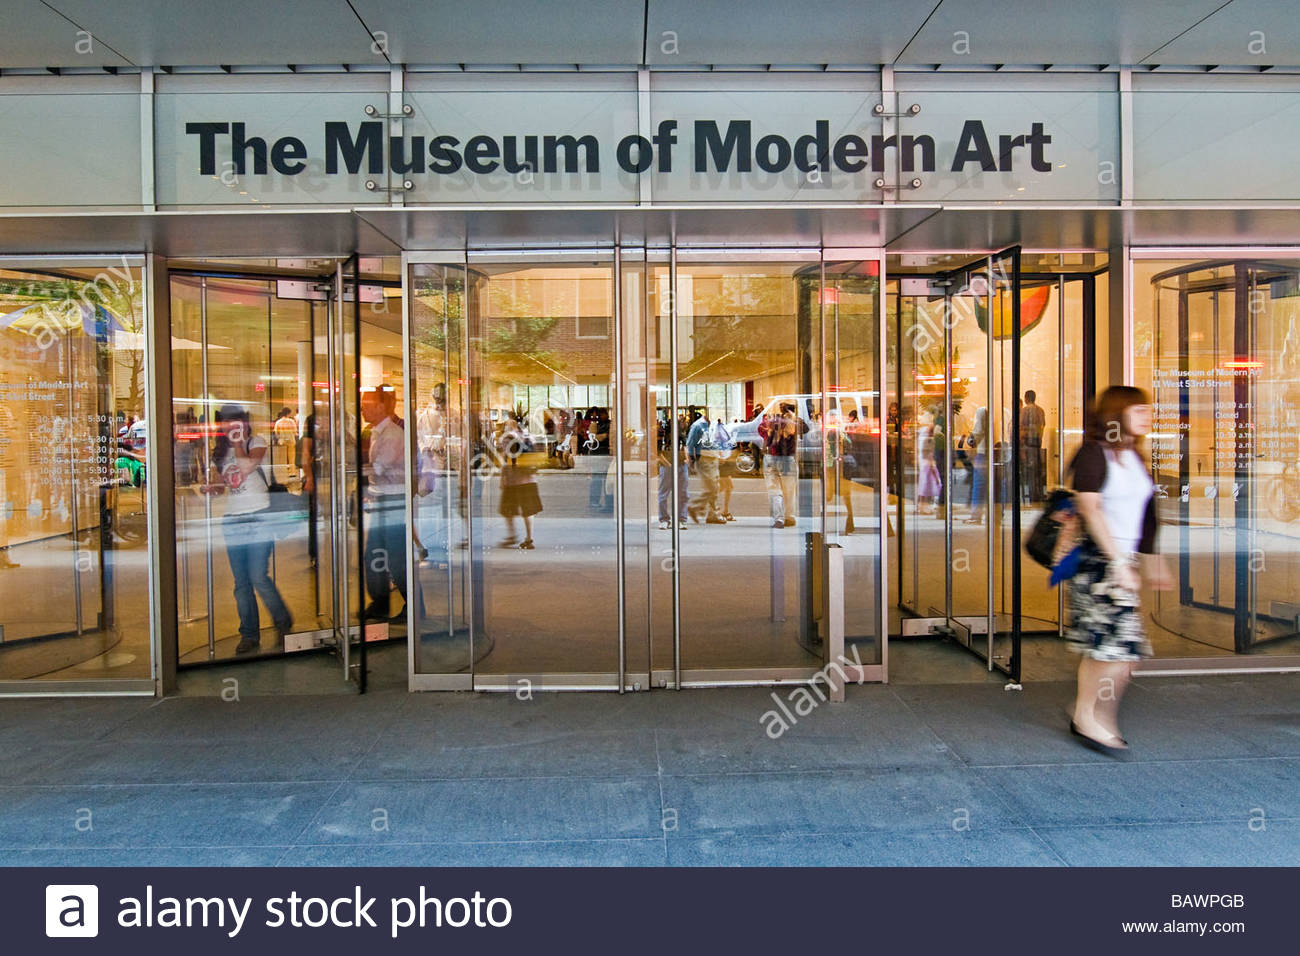 the museum of modern art moma new york city usa stock photo royalty free image 23923435 alamy. Black Bedroom Furniture Sets. Home Design Ideas